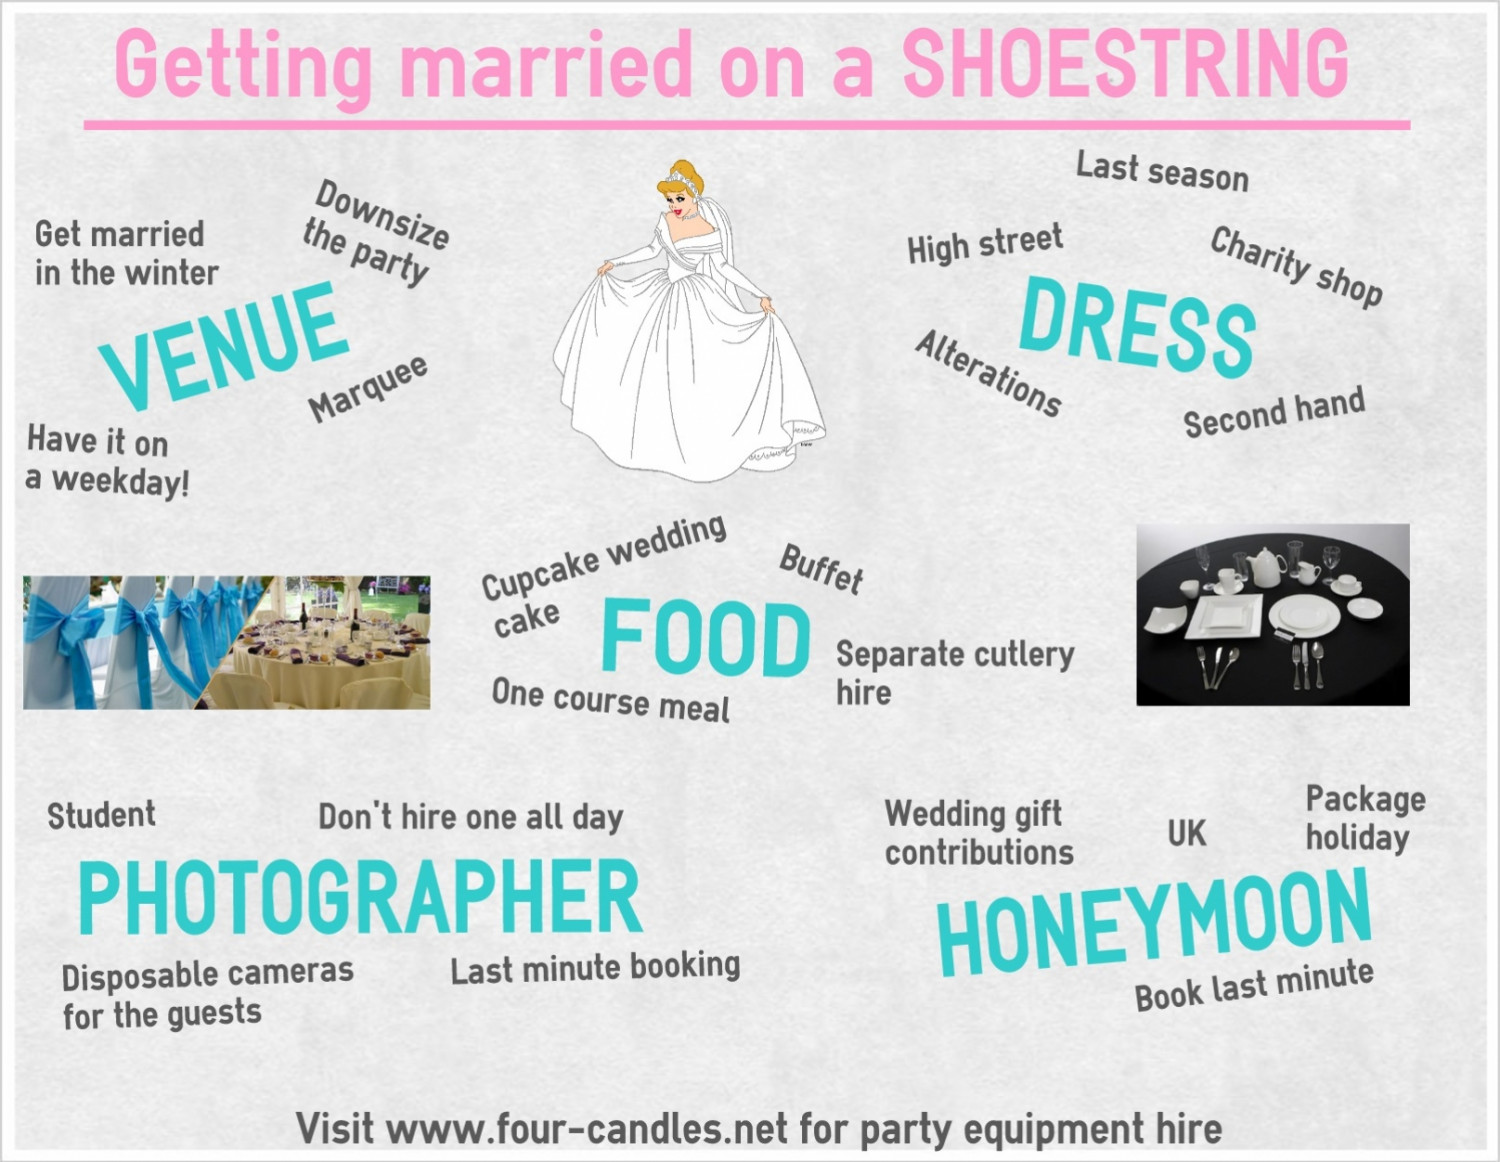 Getting married on a shoestring Infographic